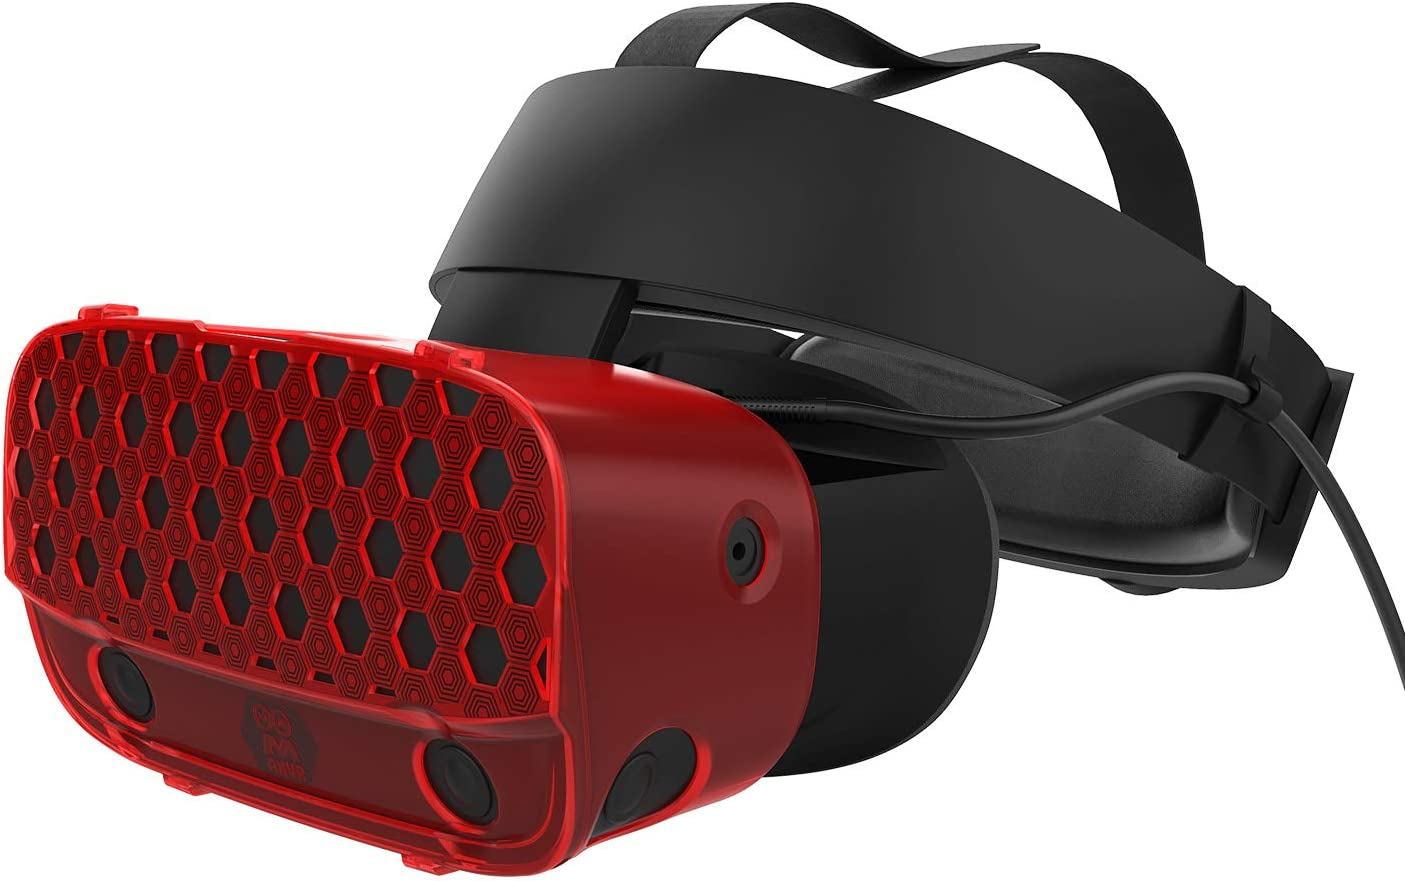 AMVR VR Headset Protective Shell, Light & Durable Cover for Oculus Rift S Accessories, Preventing Collisions and Scratches (Red)